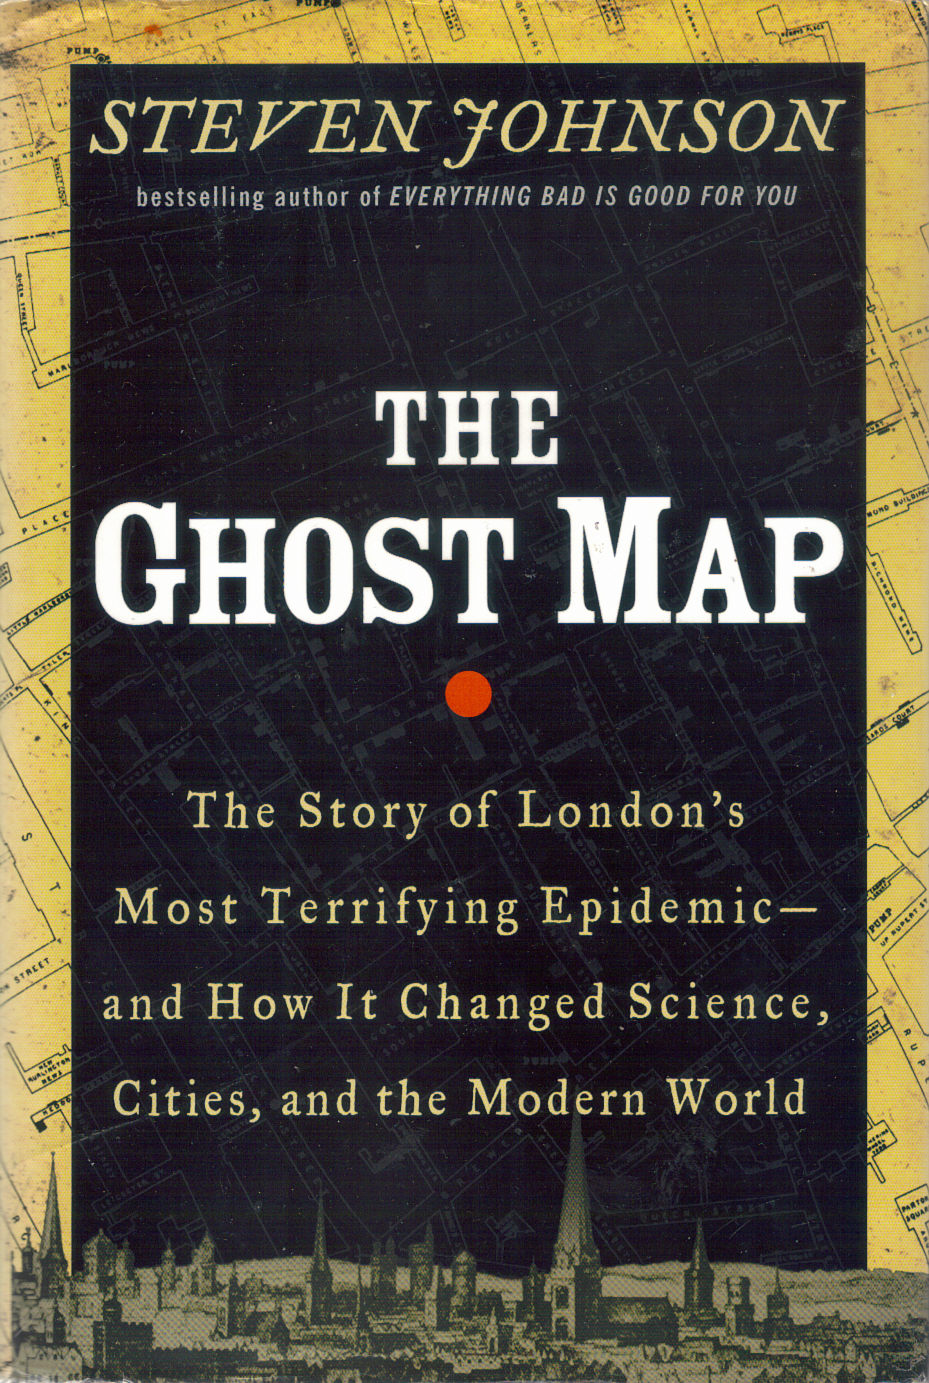 the ghost map thesis An animated introduction to the ghost map: the story of london's most terrifying epidemic and how it changed cities, science, and the modern world by steven.